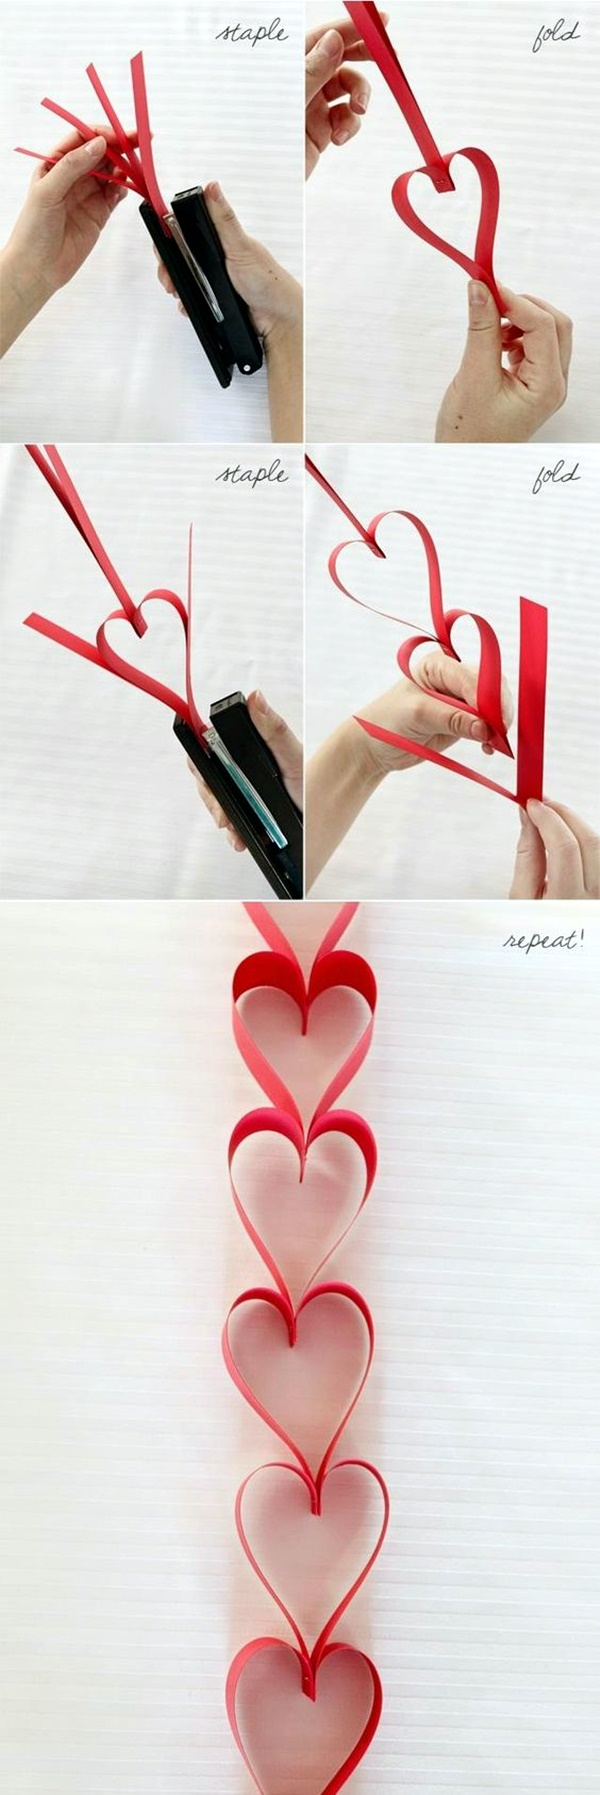 valentines-crafts-for-kids-1